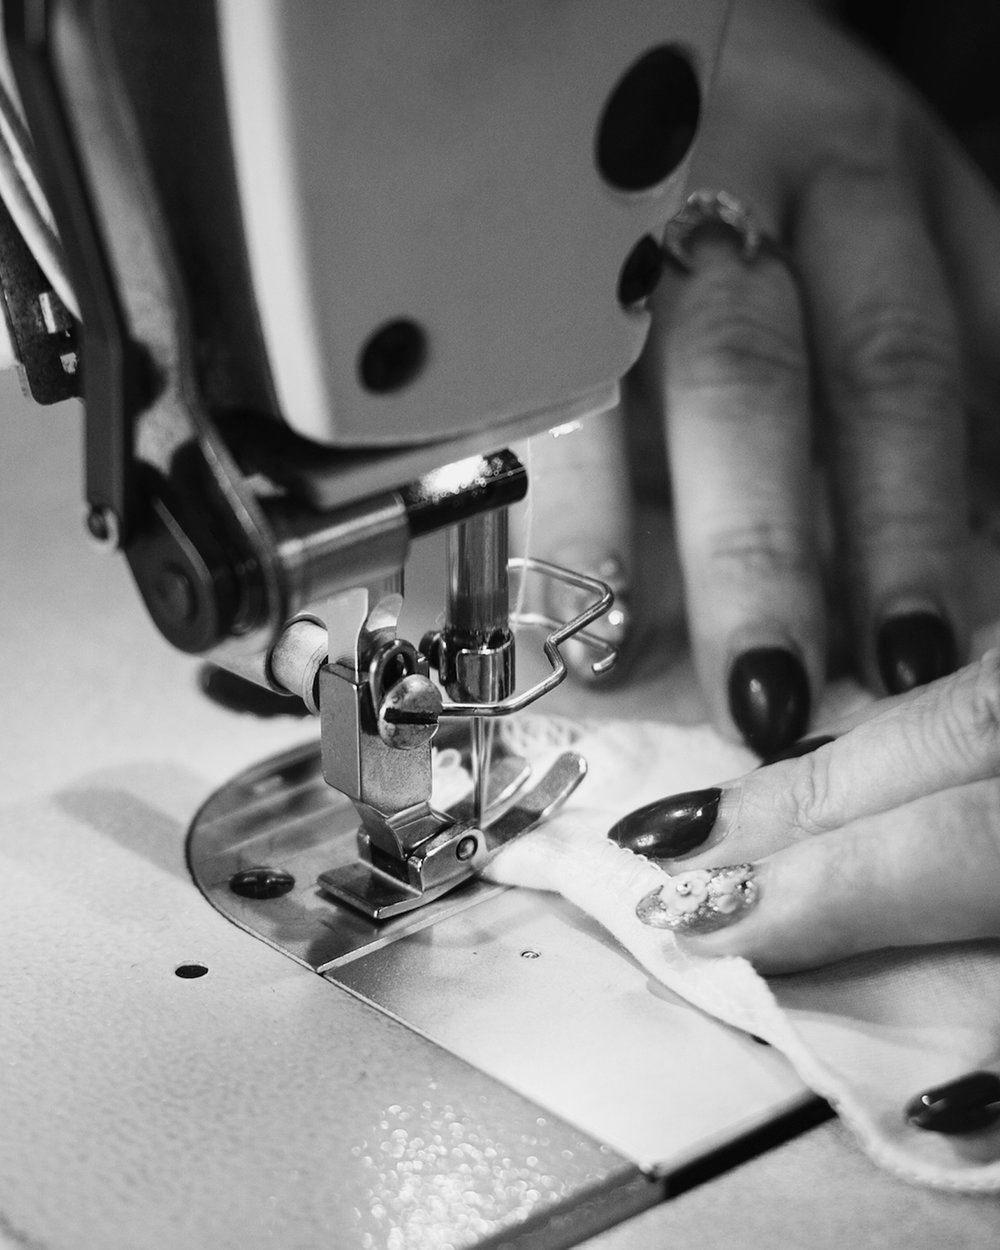 sewing-apprenticeships-fashion-enter-podcast.jpg